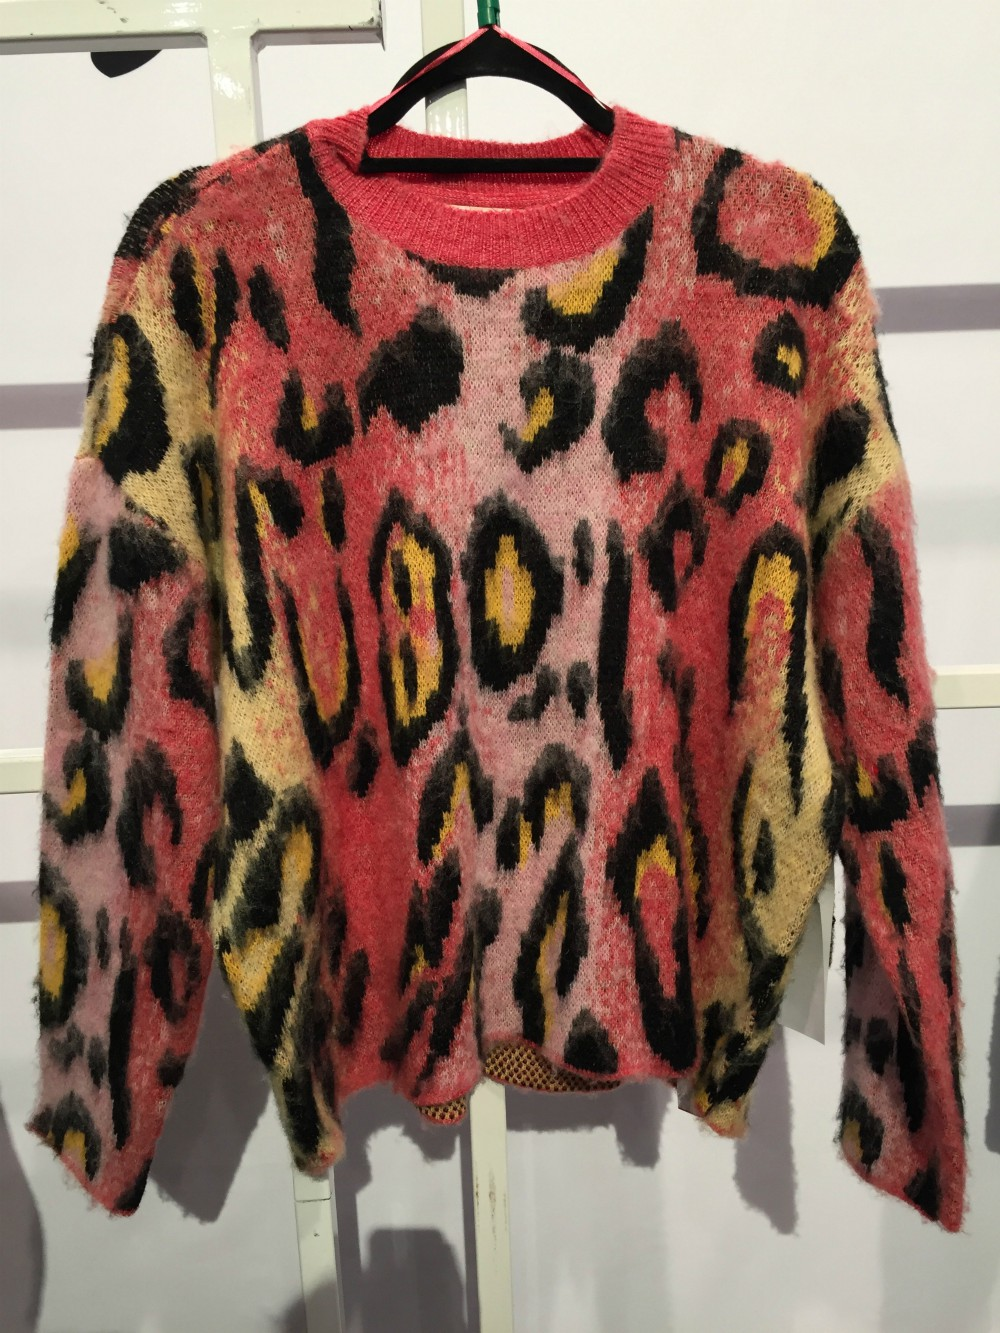 """""""Instead of just organic browns, we layered those natural colors with spices, burgundies and citrons,"""" Alex Birenbaum, account manager for RD Style, said of the animal print trend. Bringing together a """"combination of materials"""" like soft, fuzzy yarns more silky weaves helped create texture, she explained. """"We were looking to enrich the trend with more dimension and depth this season."""""""